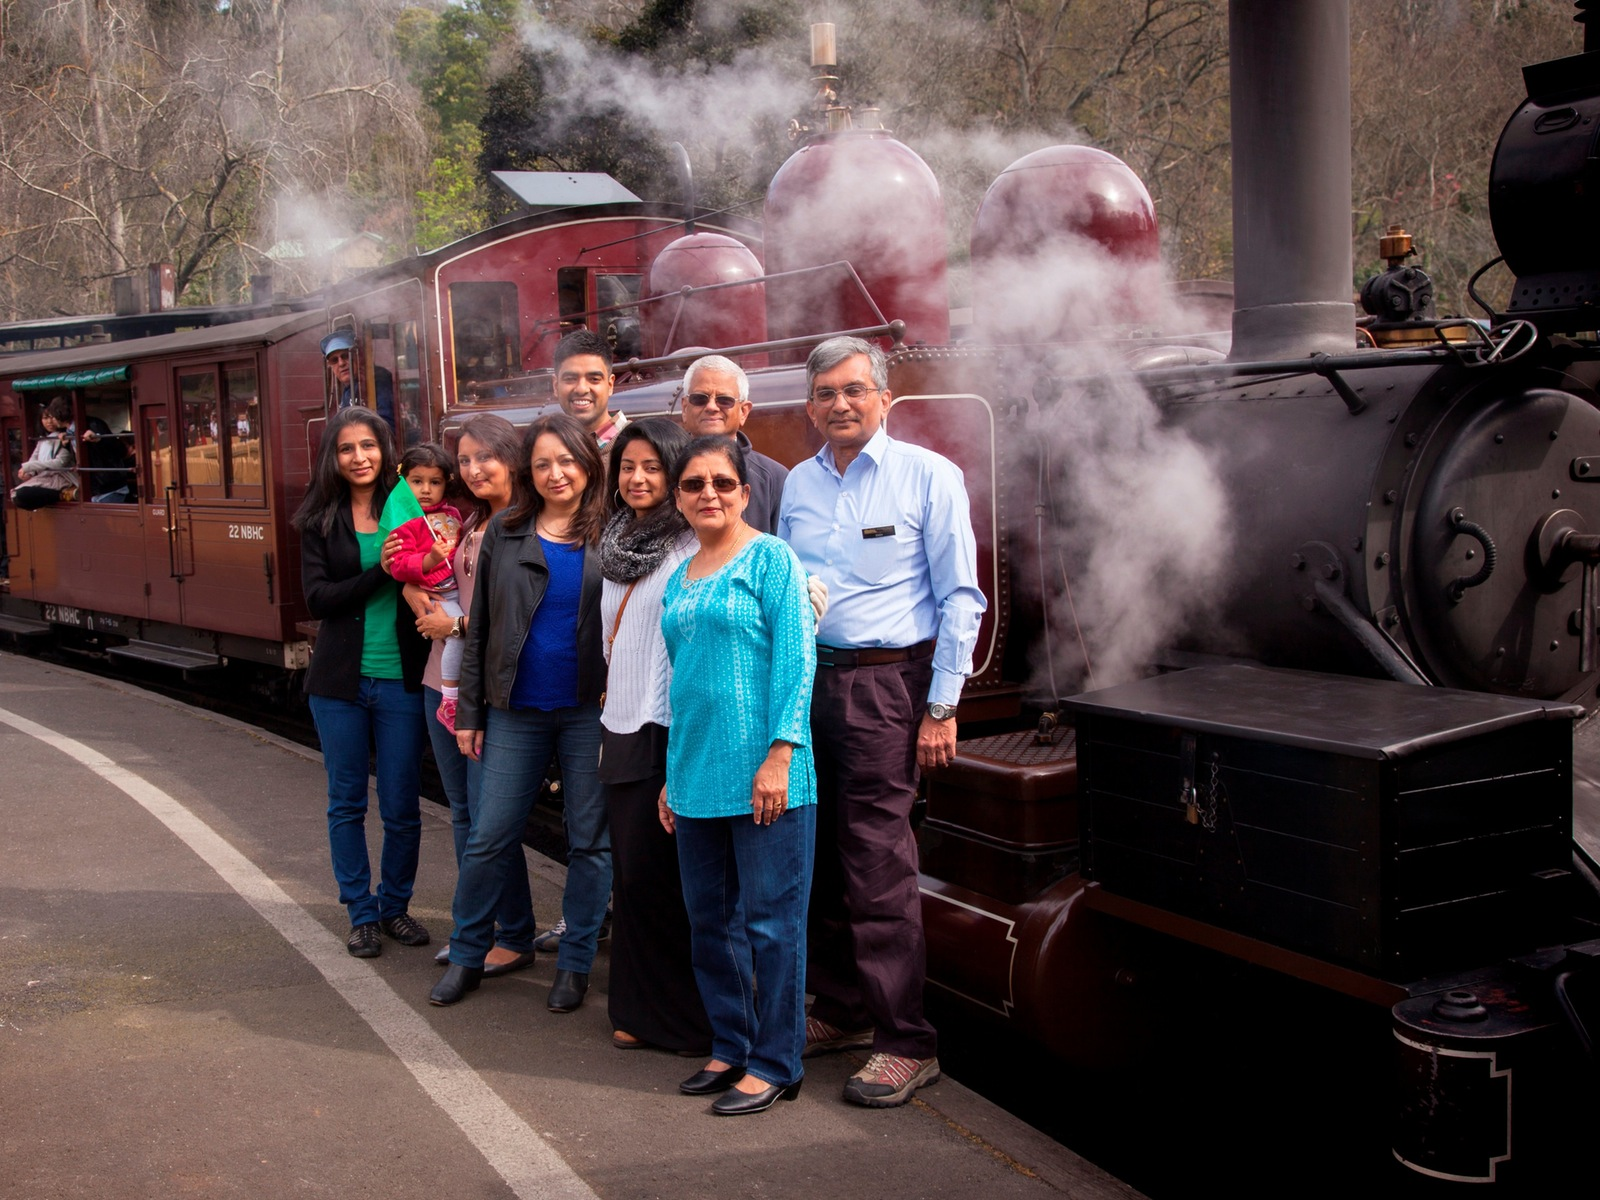 International family at next to Puffing Billy locomotive